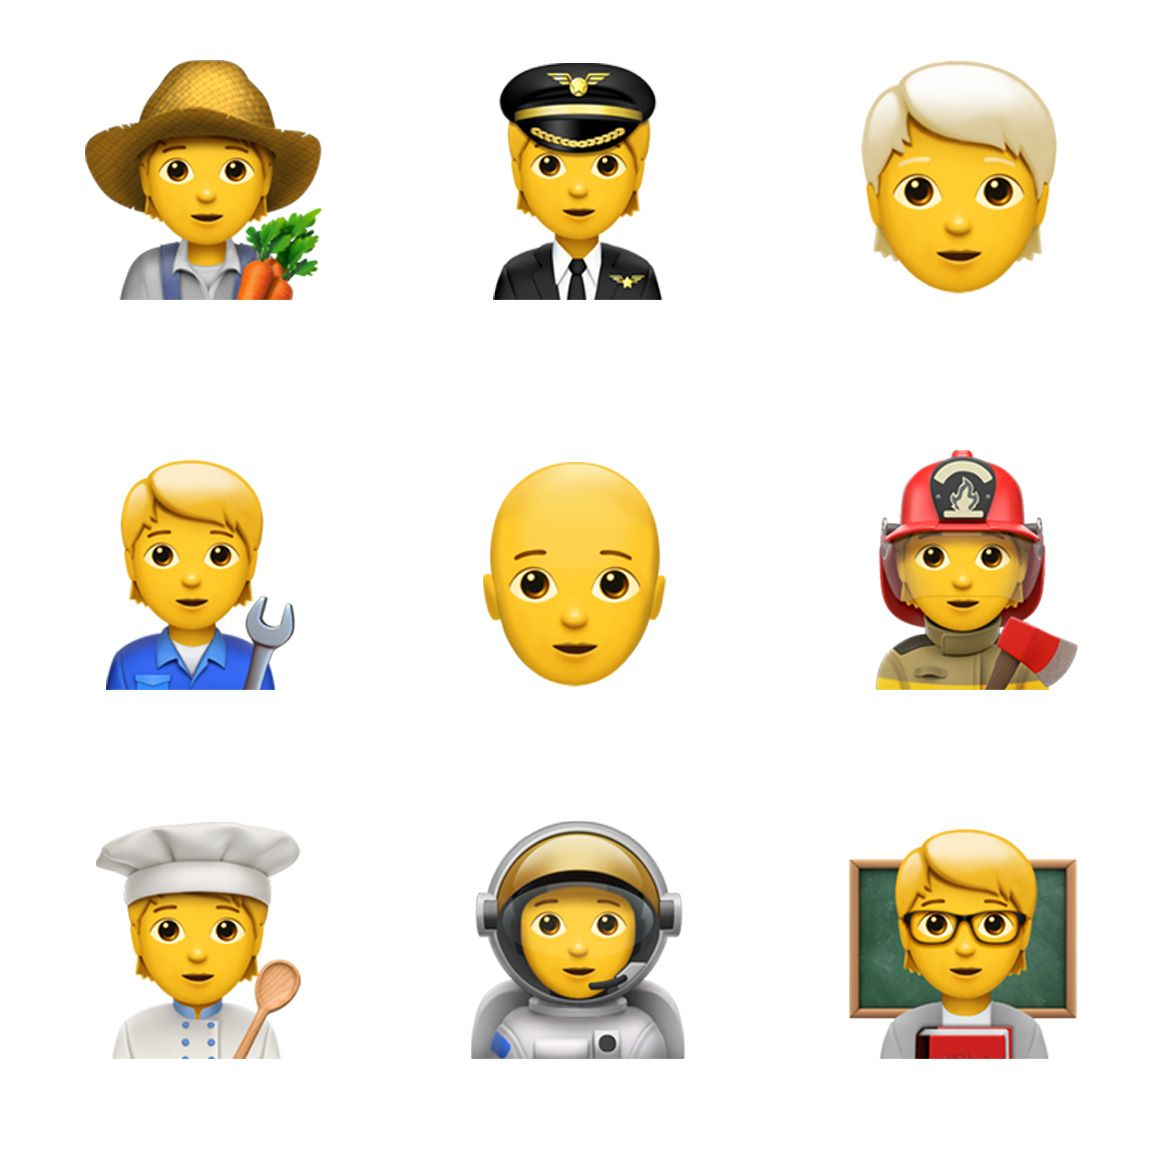 Emojipedia-Apple-iOS-13.2-Emoji-Changelog-Gender-Neutral-Selection